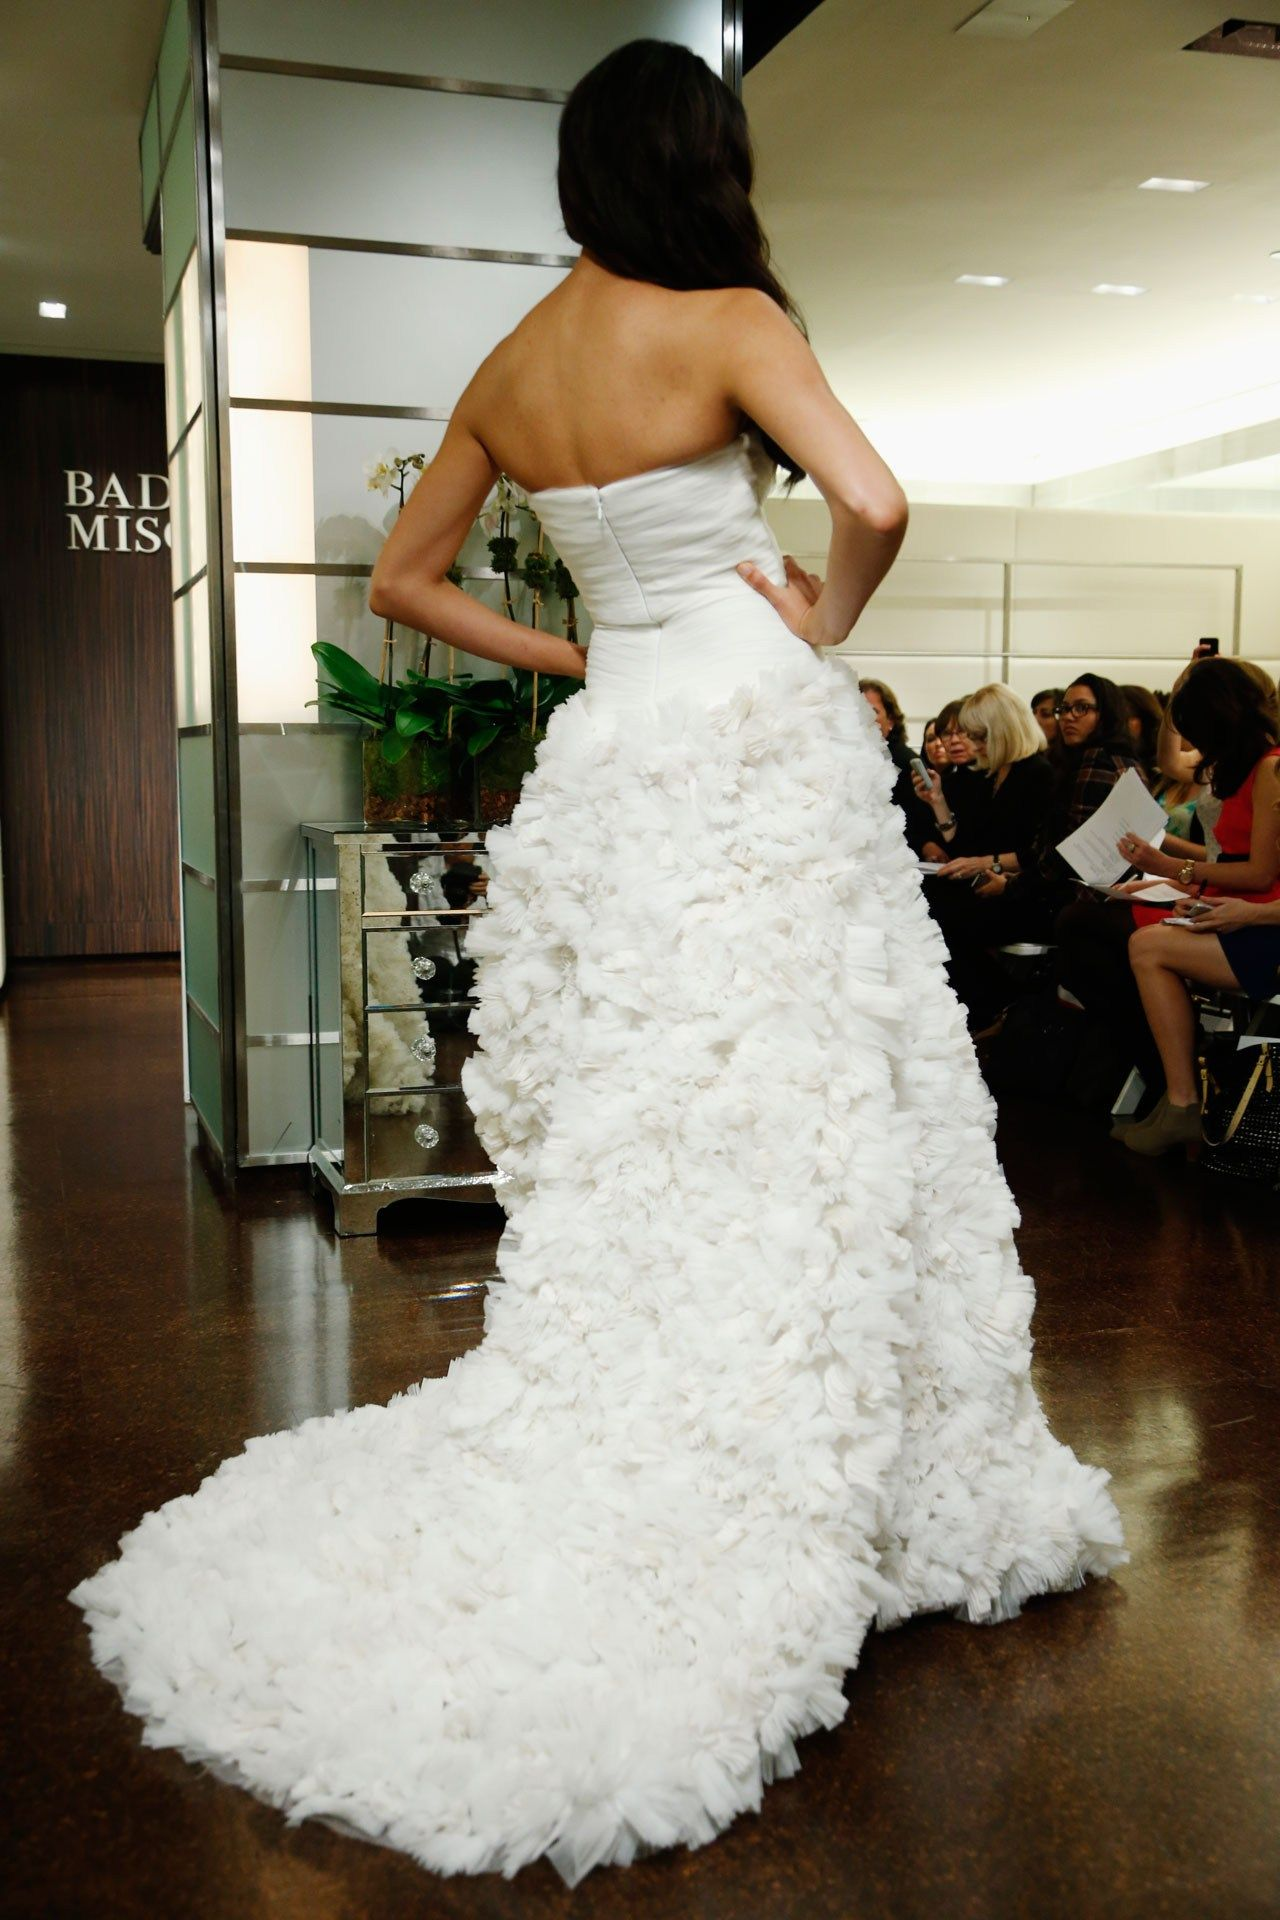 Bad wedding dresses  Wedding Dresses  The Ultimate Gallery BridesMagazine